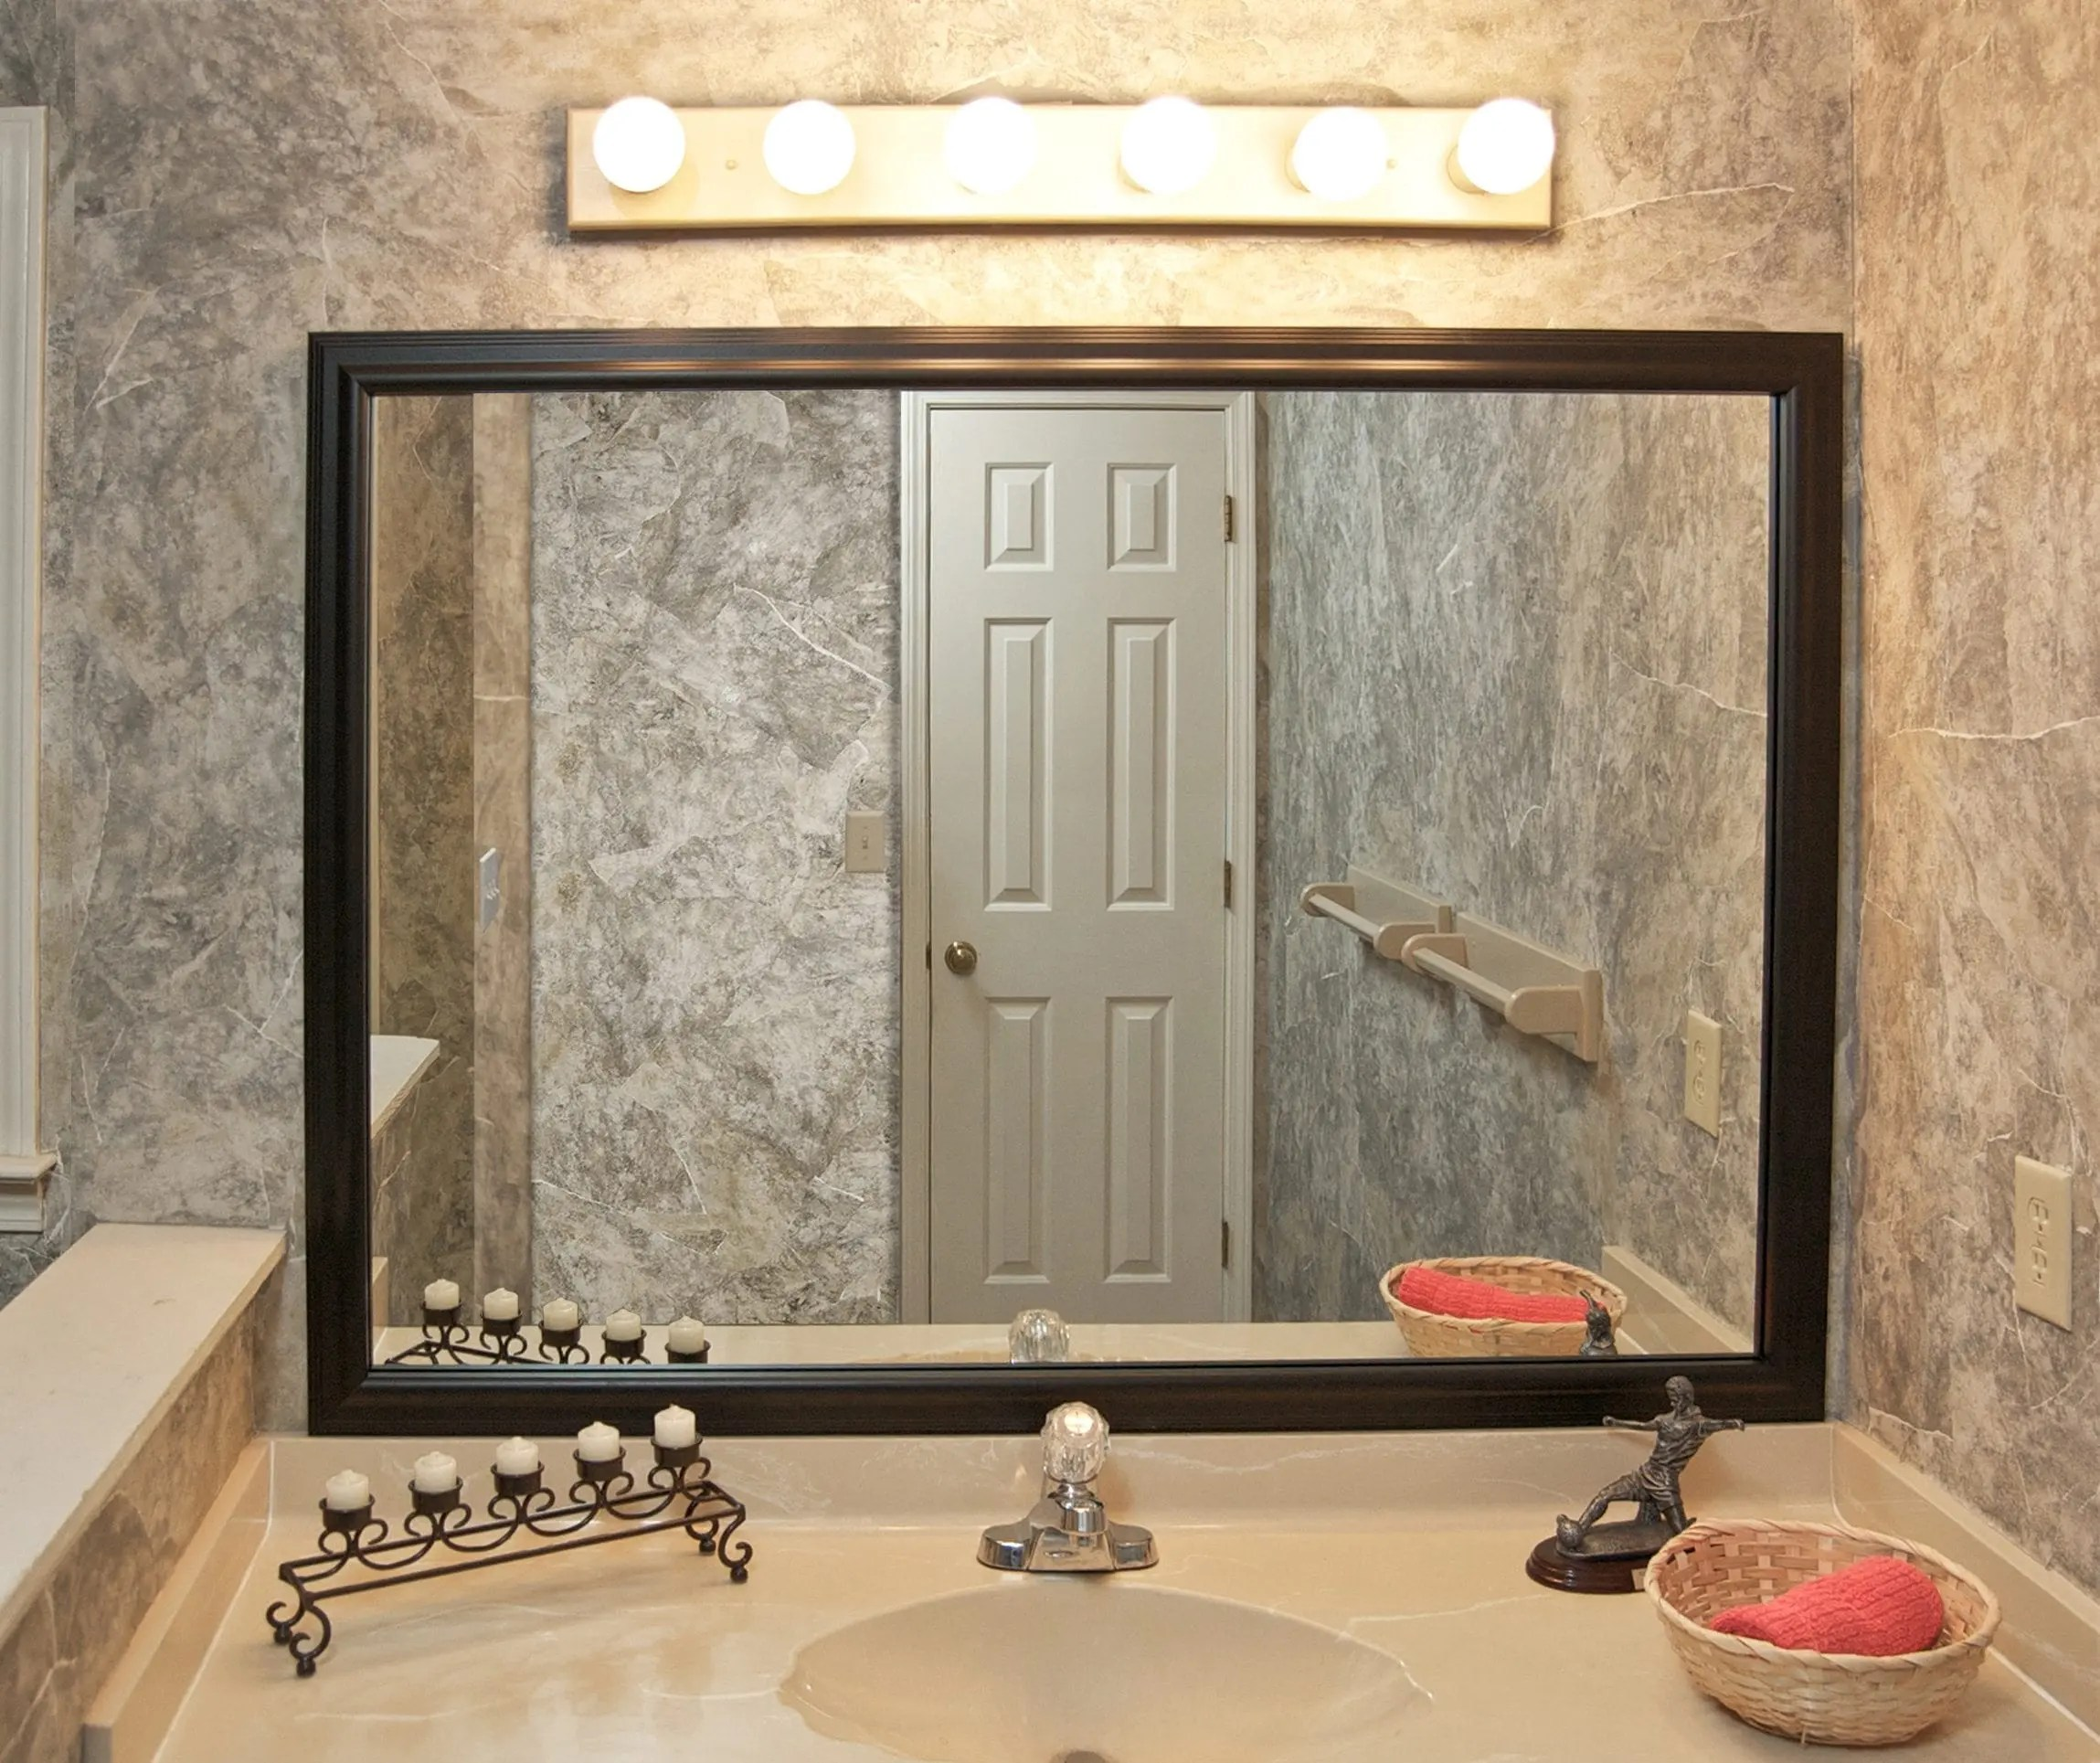 Beveled Mirror Trim Kits Black Edges On Mirrors Why It Happens And What To Do